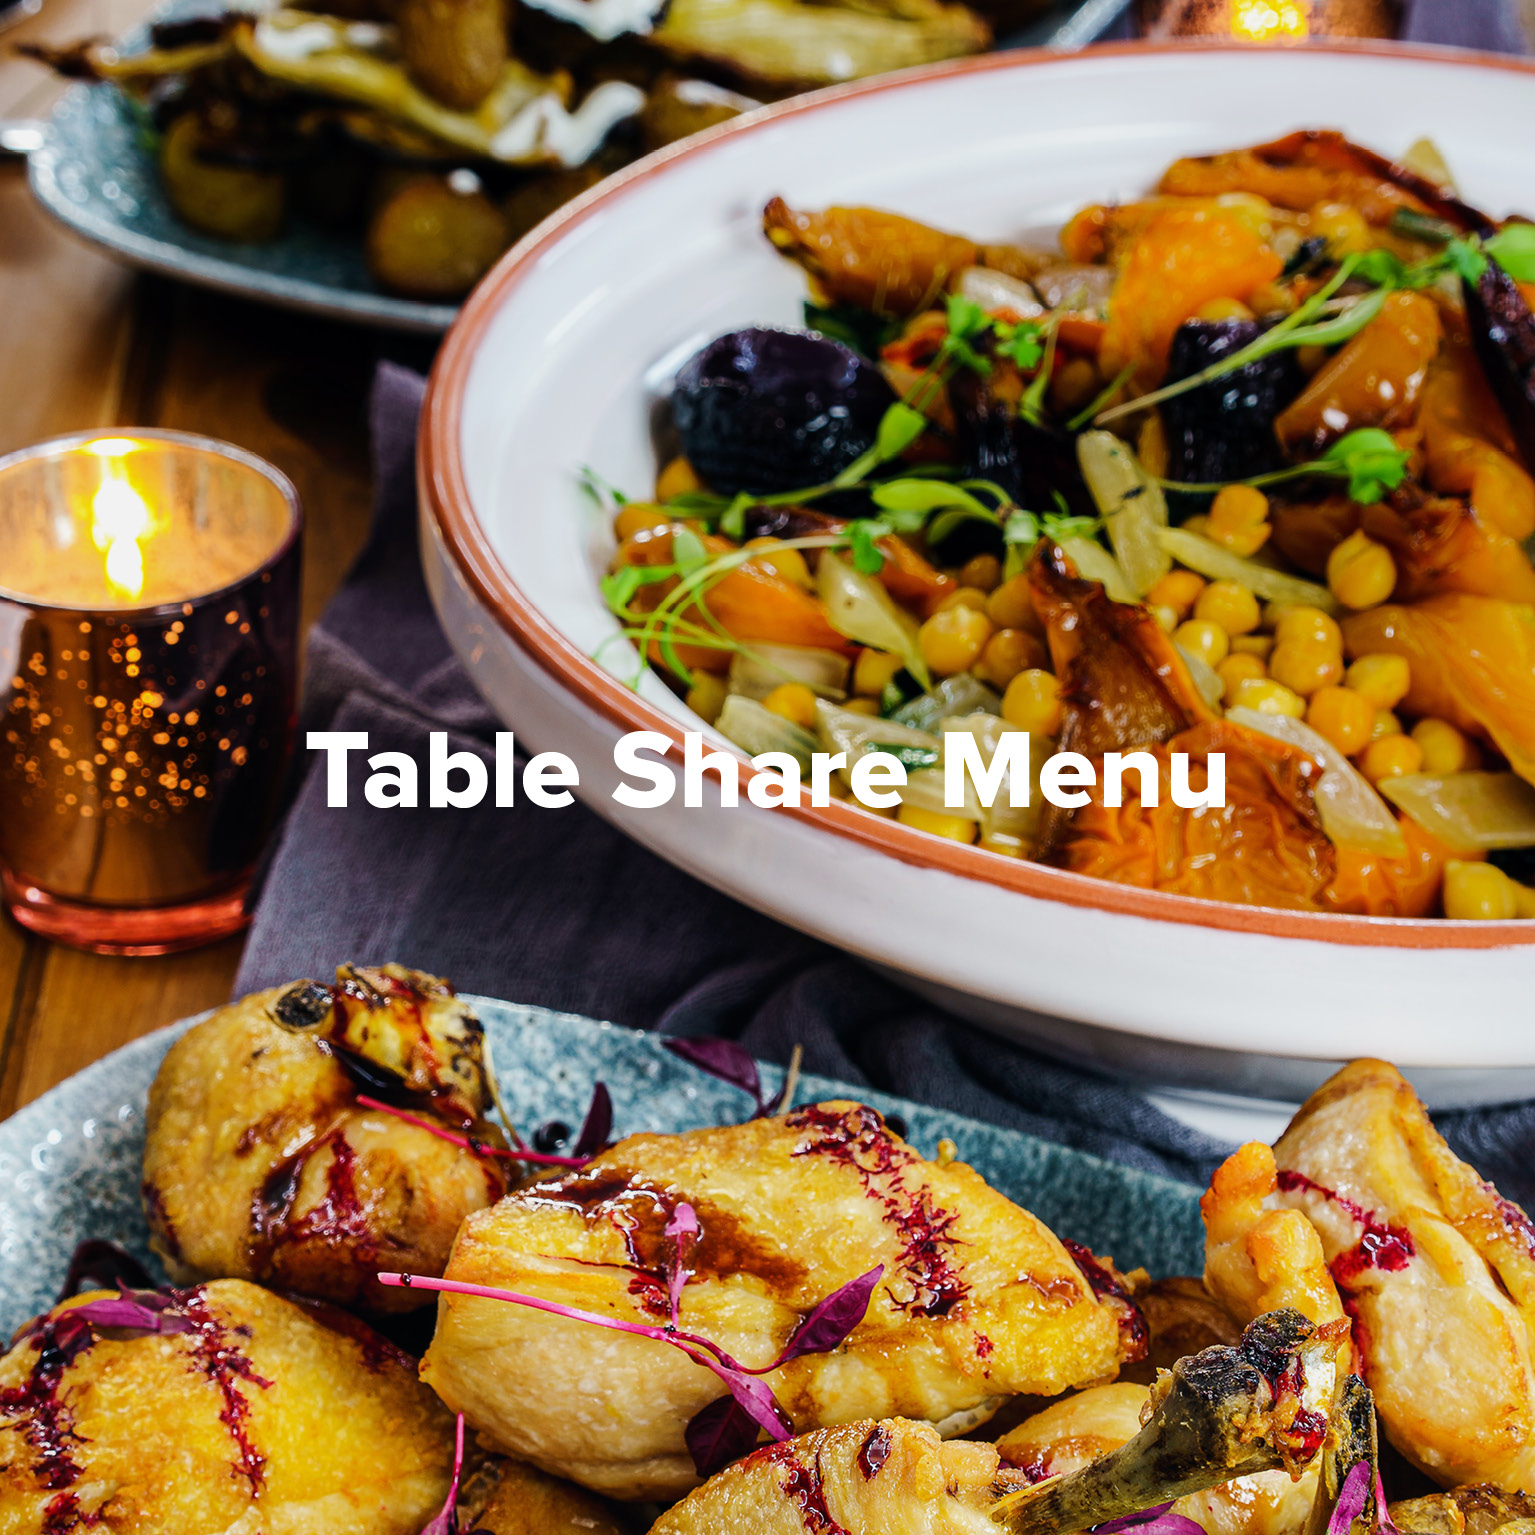 Table Share Menu at Rowers on Cooks River